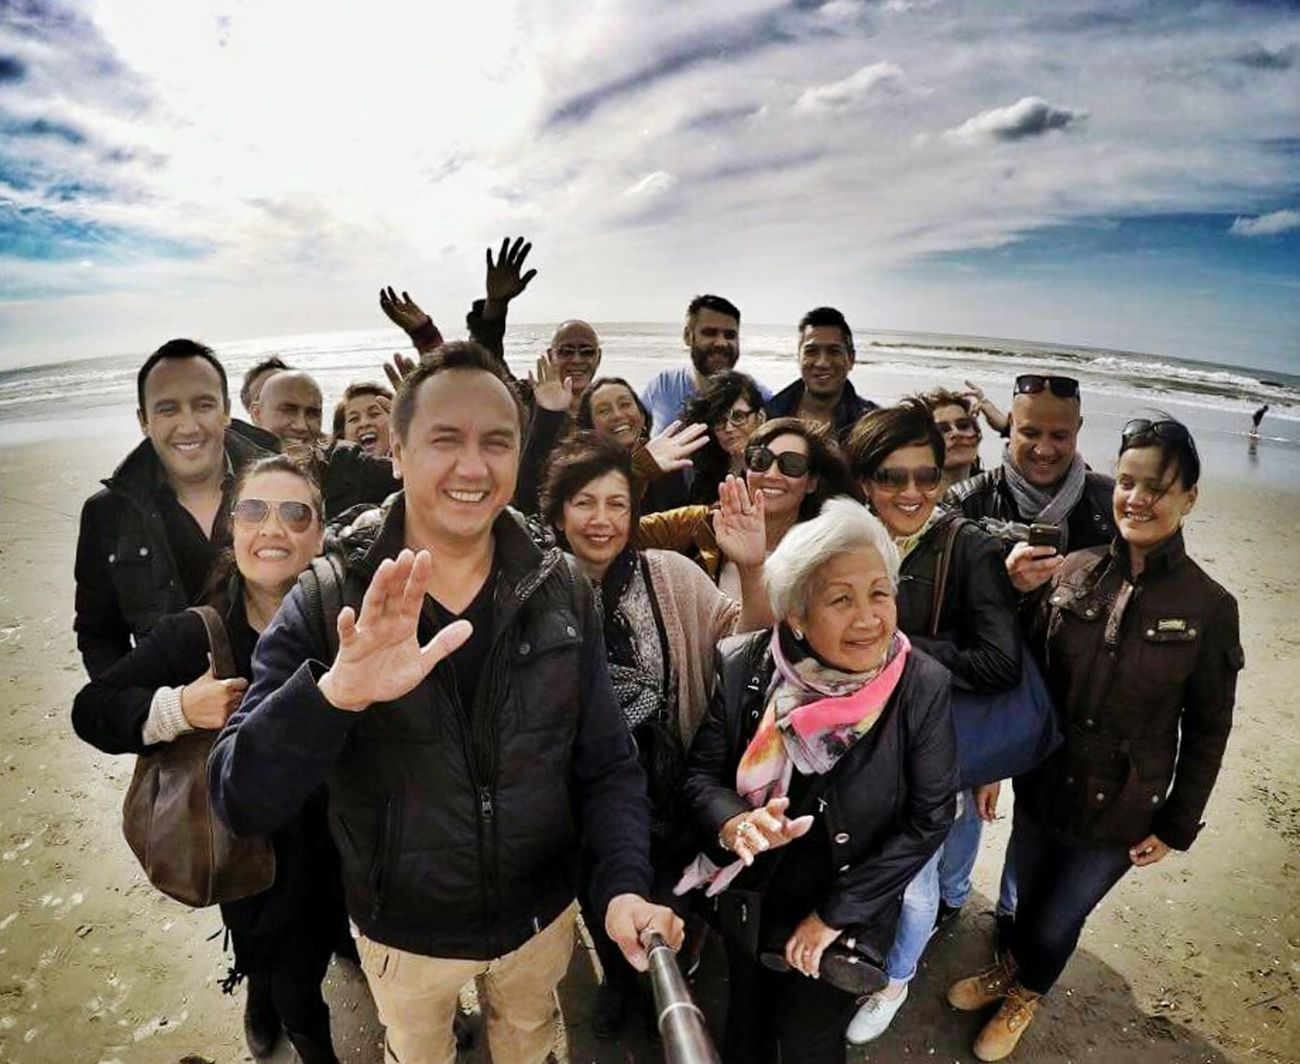 Familyday Cousins  Check This Out Enjoying Life Hello World On The Beach At Bergen Aan Zee Loving Life  Family Portrait Snapshots Of Life